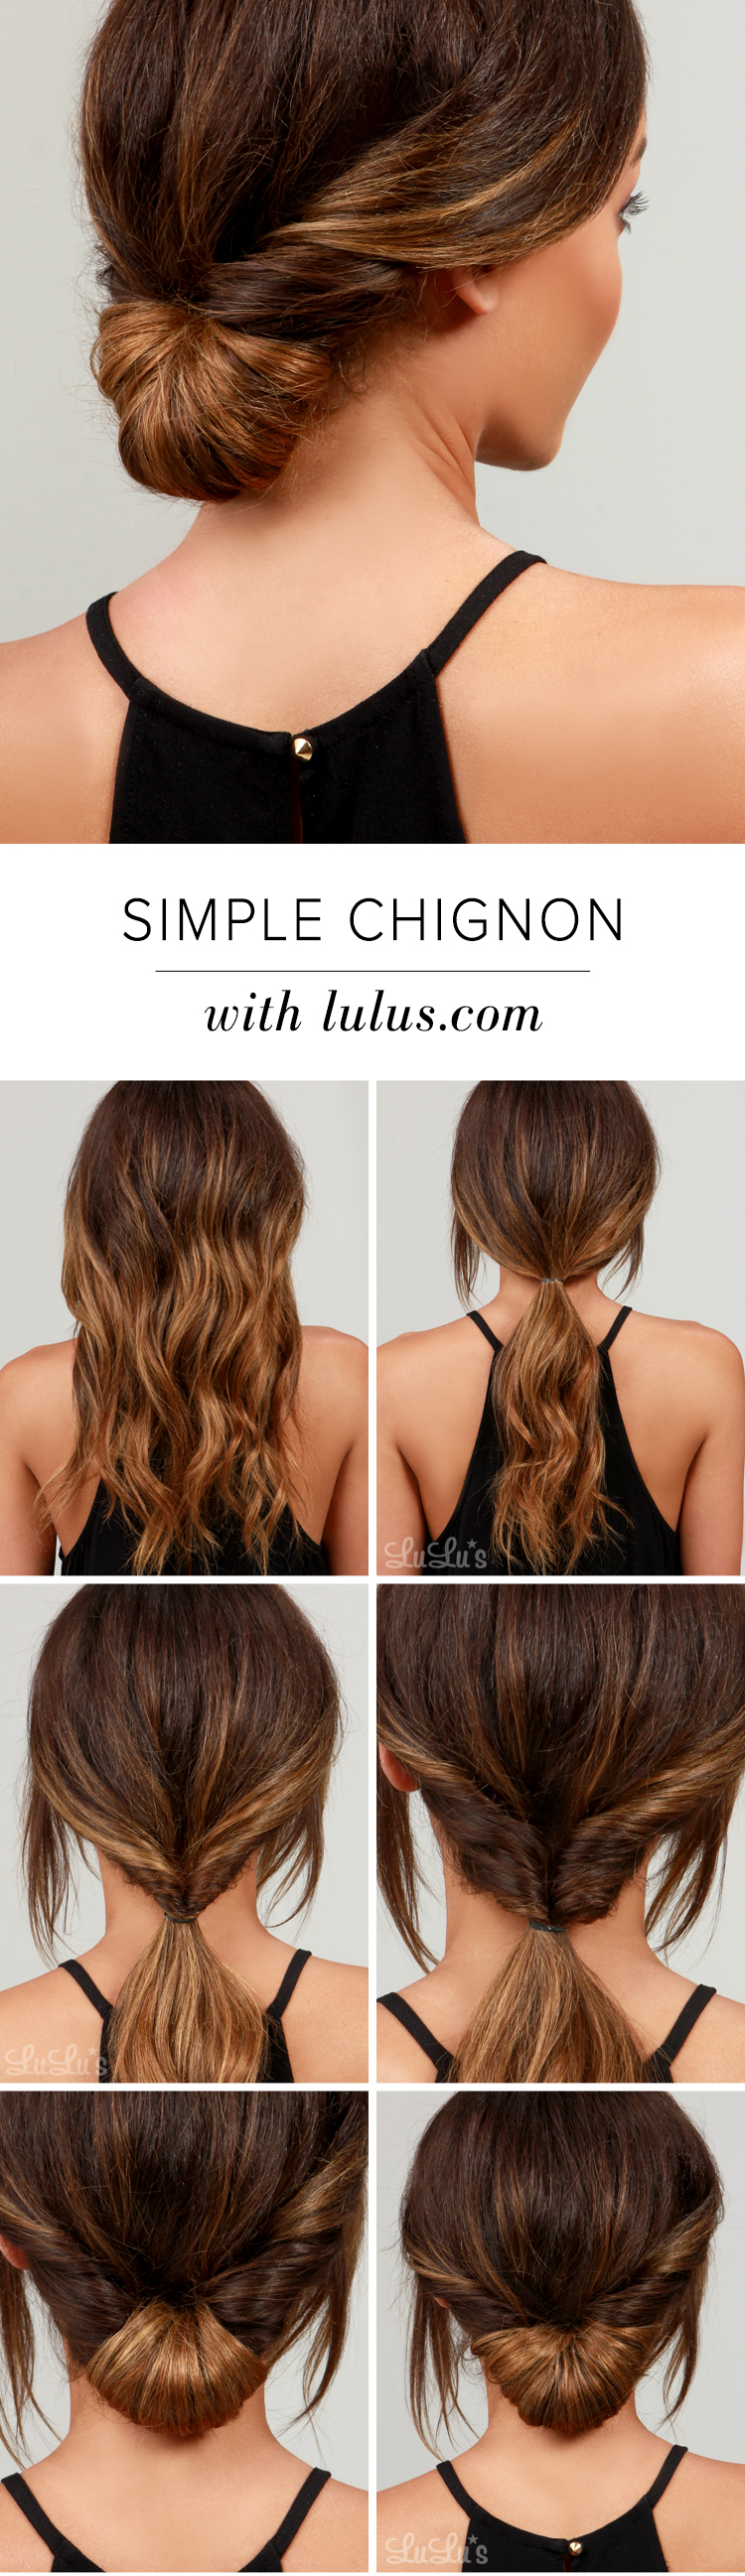 Chignon Hair Tutorial